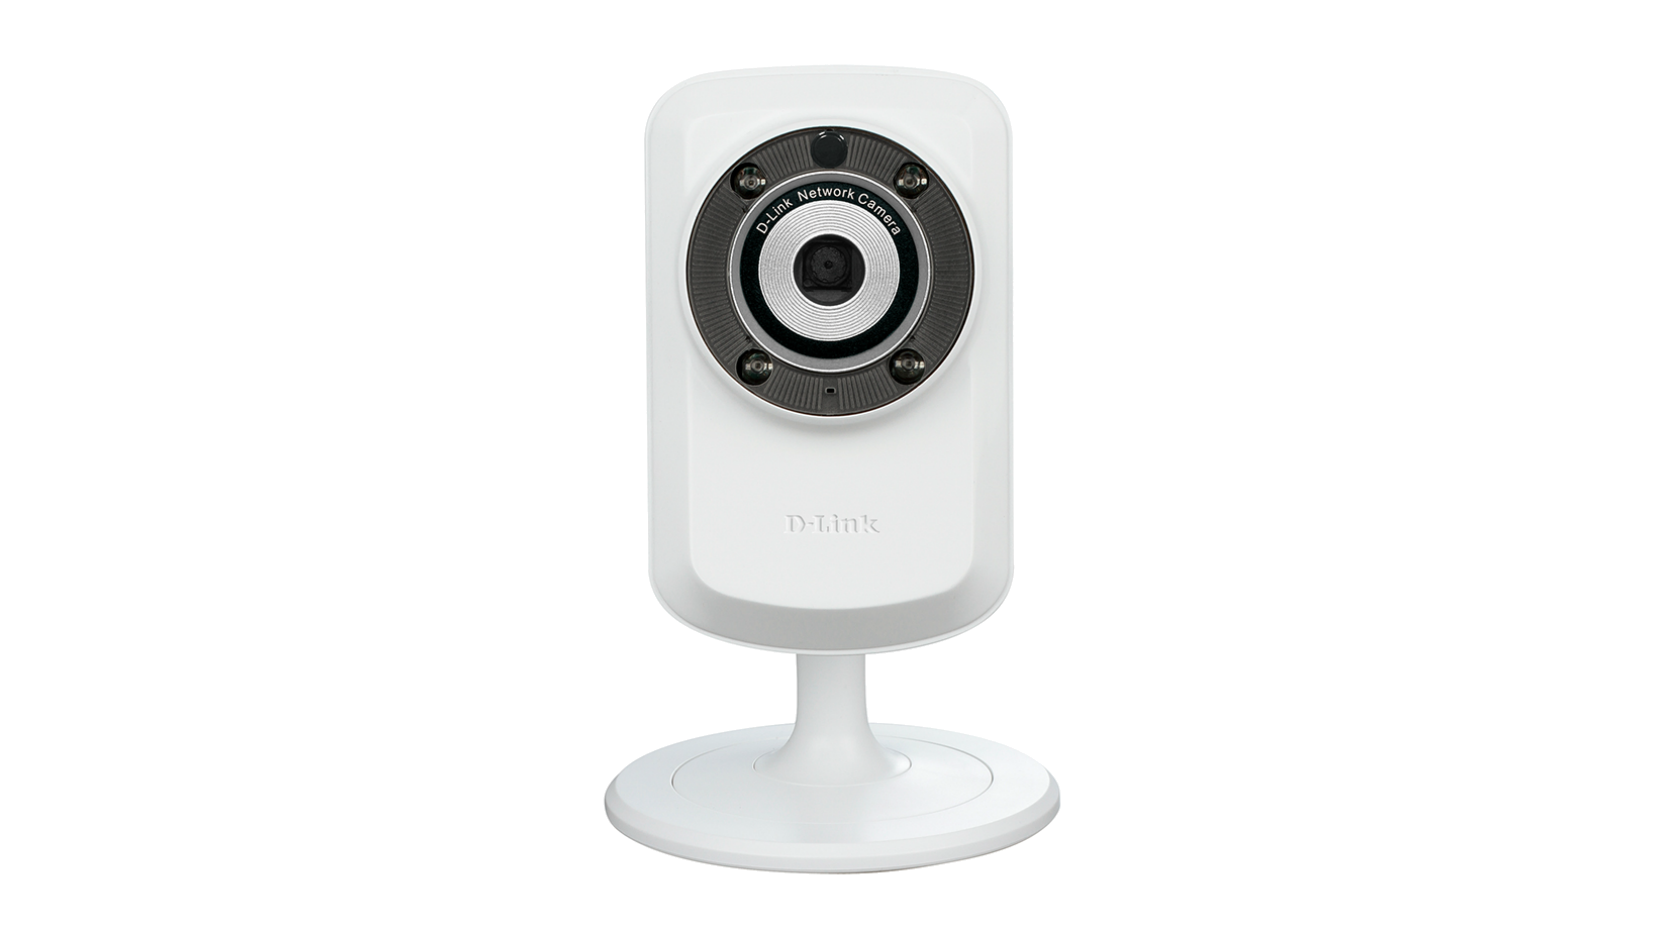 D Link Kamera : dcs 932l day night cloud camera d link uk ~ Watch28wear.com Haus und Dekorationen